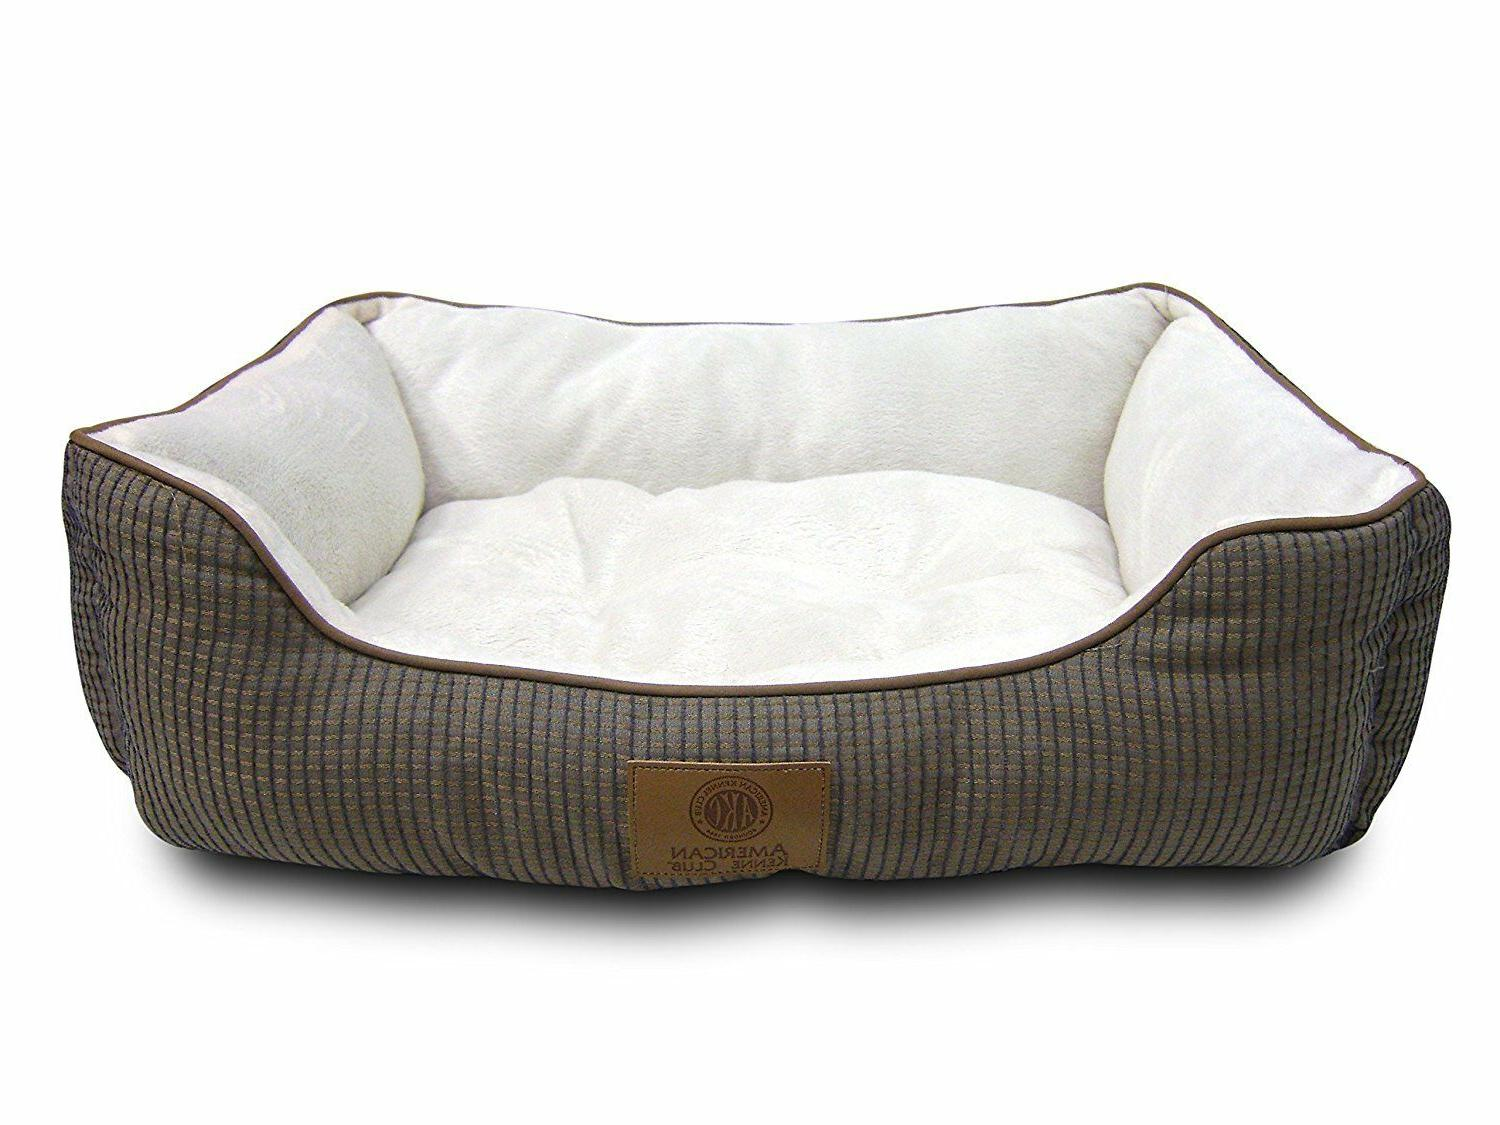 dog bed soft warm cozy